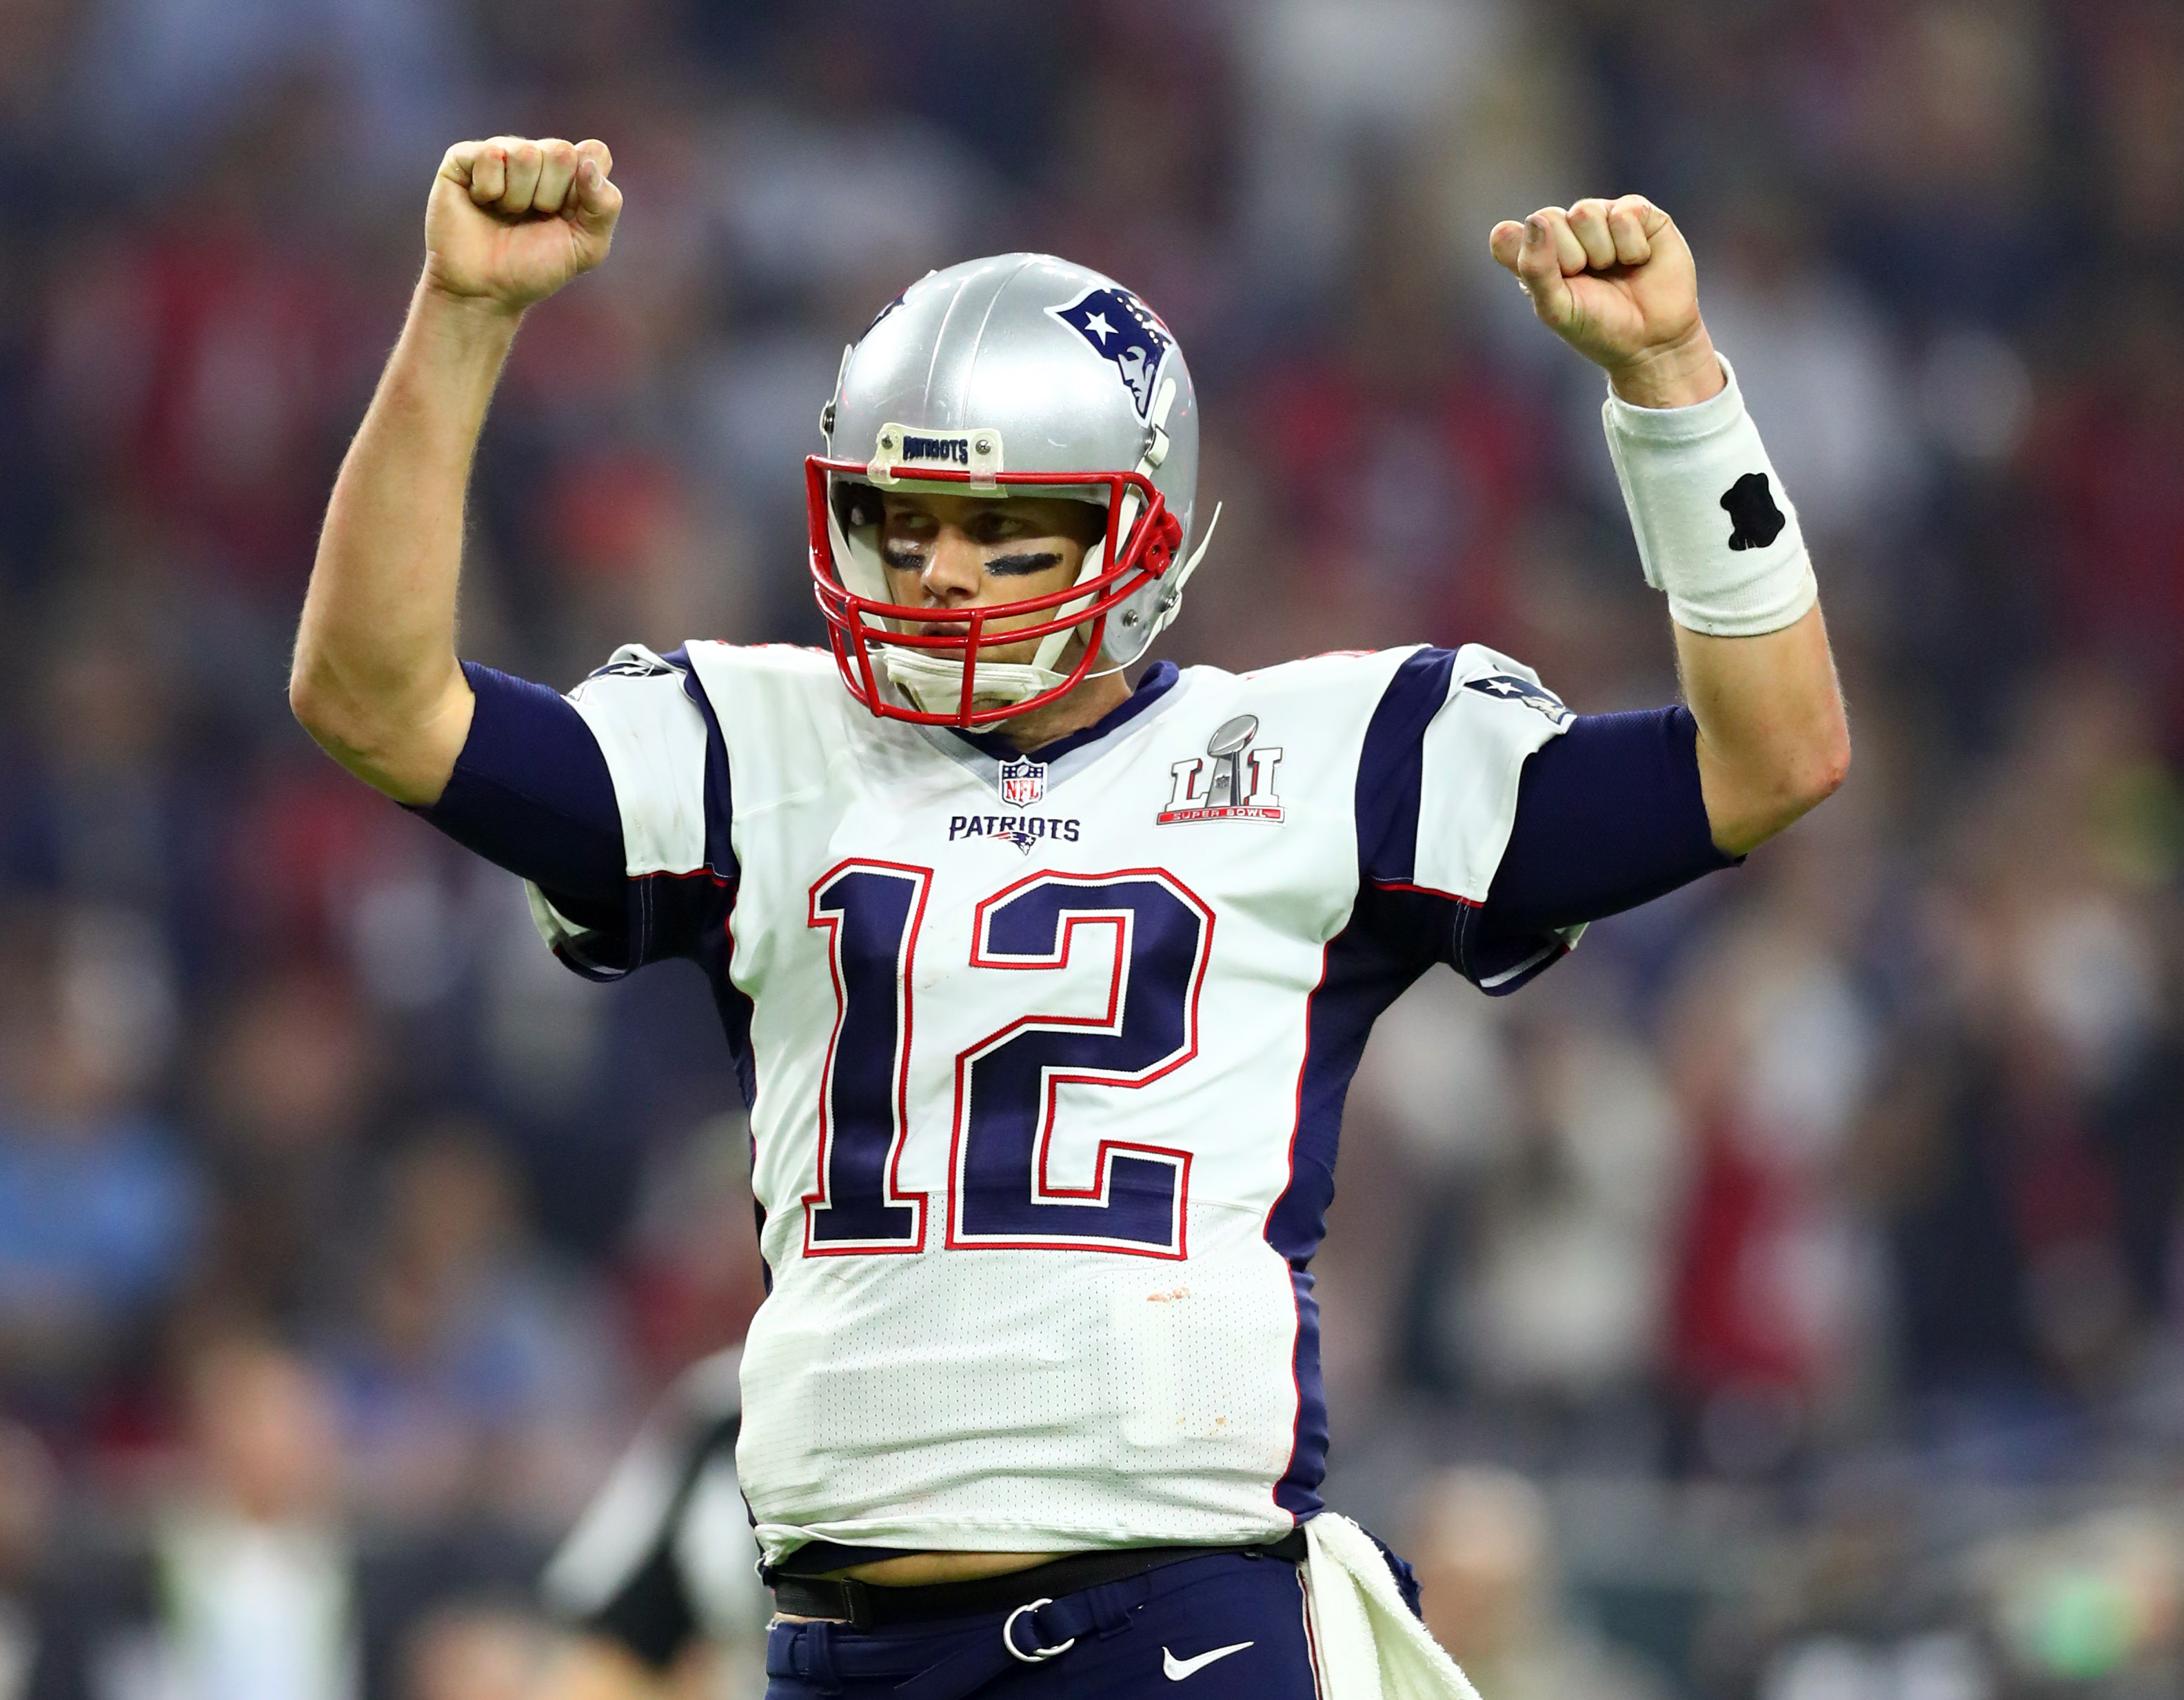 Feb 5, 2017; Houston, TX, USA; New England Patriots quarterback Tom Brady (12) celebrates a two-point conversion against the Atlanta Falcons in the fourth quarter during Super Bowl LI at NRG Stadium. Mandatory Credit: Mark J. Rebilas-USA TODAY Sports